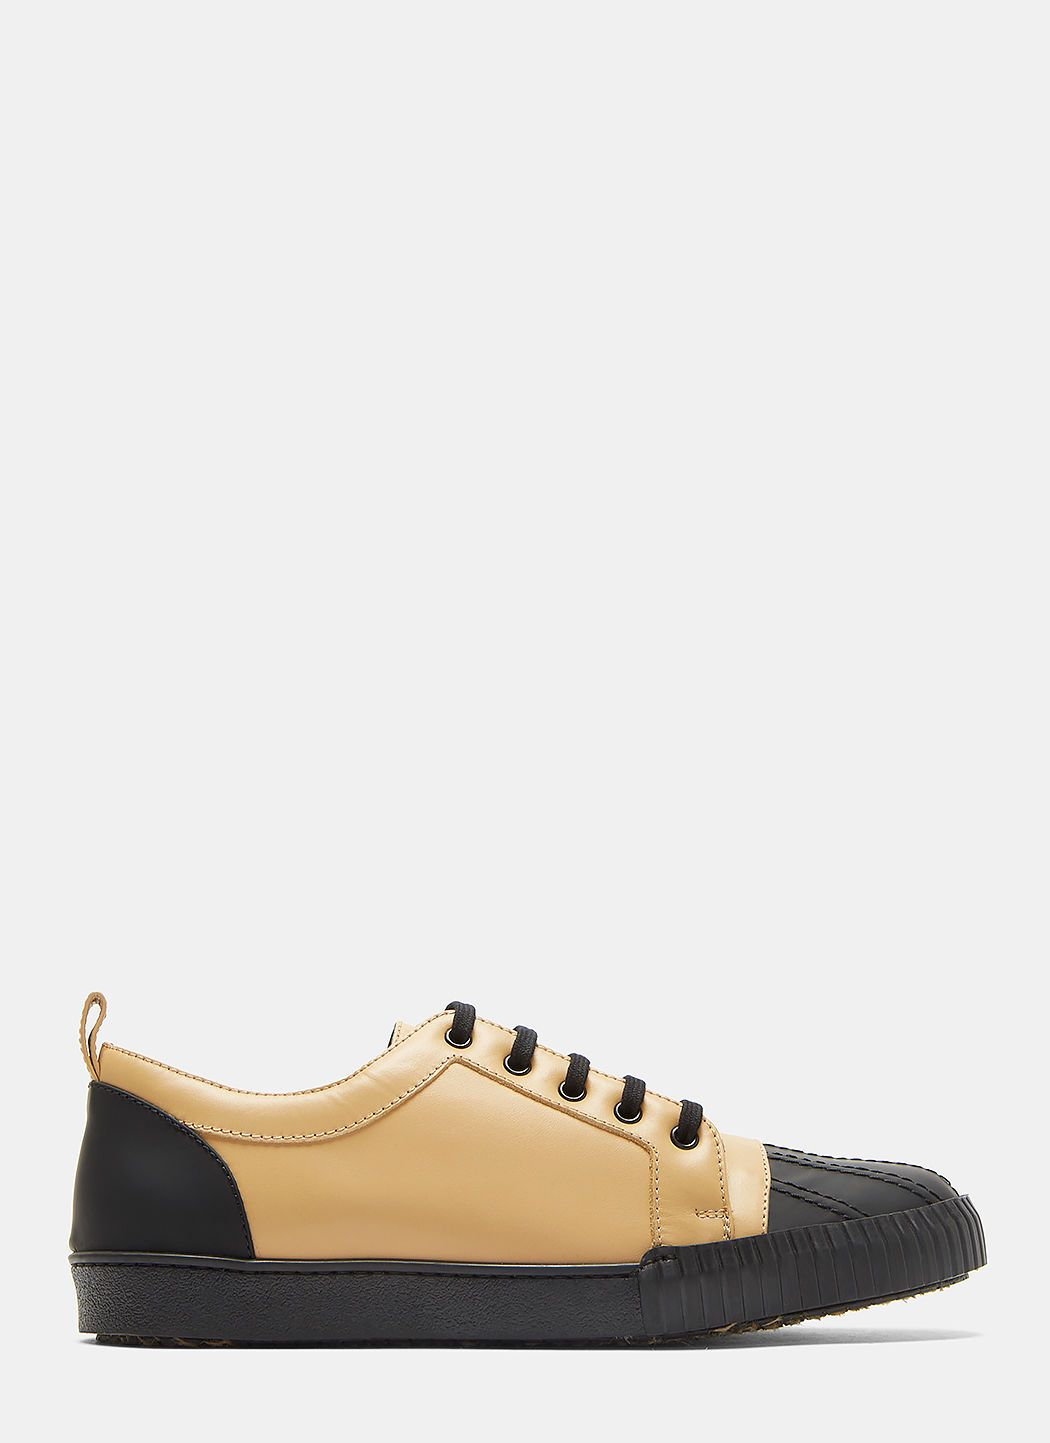 MarniTwo-Tone Shell Toe Leather Sneakers svh91uW6xV